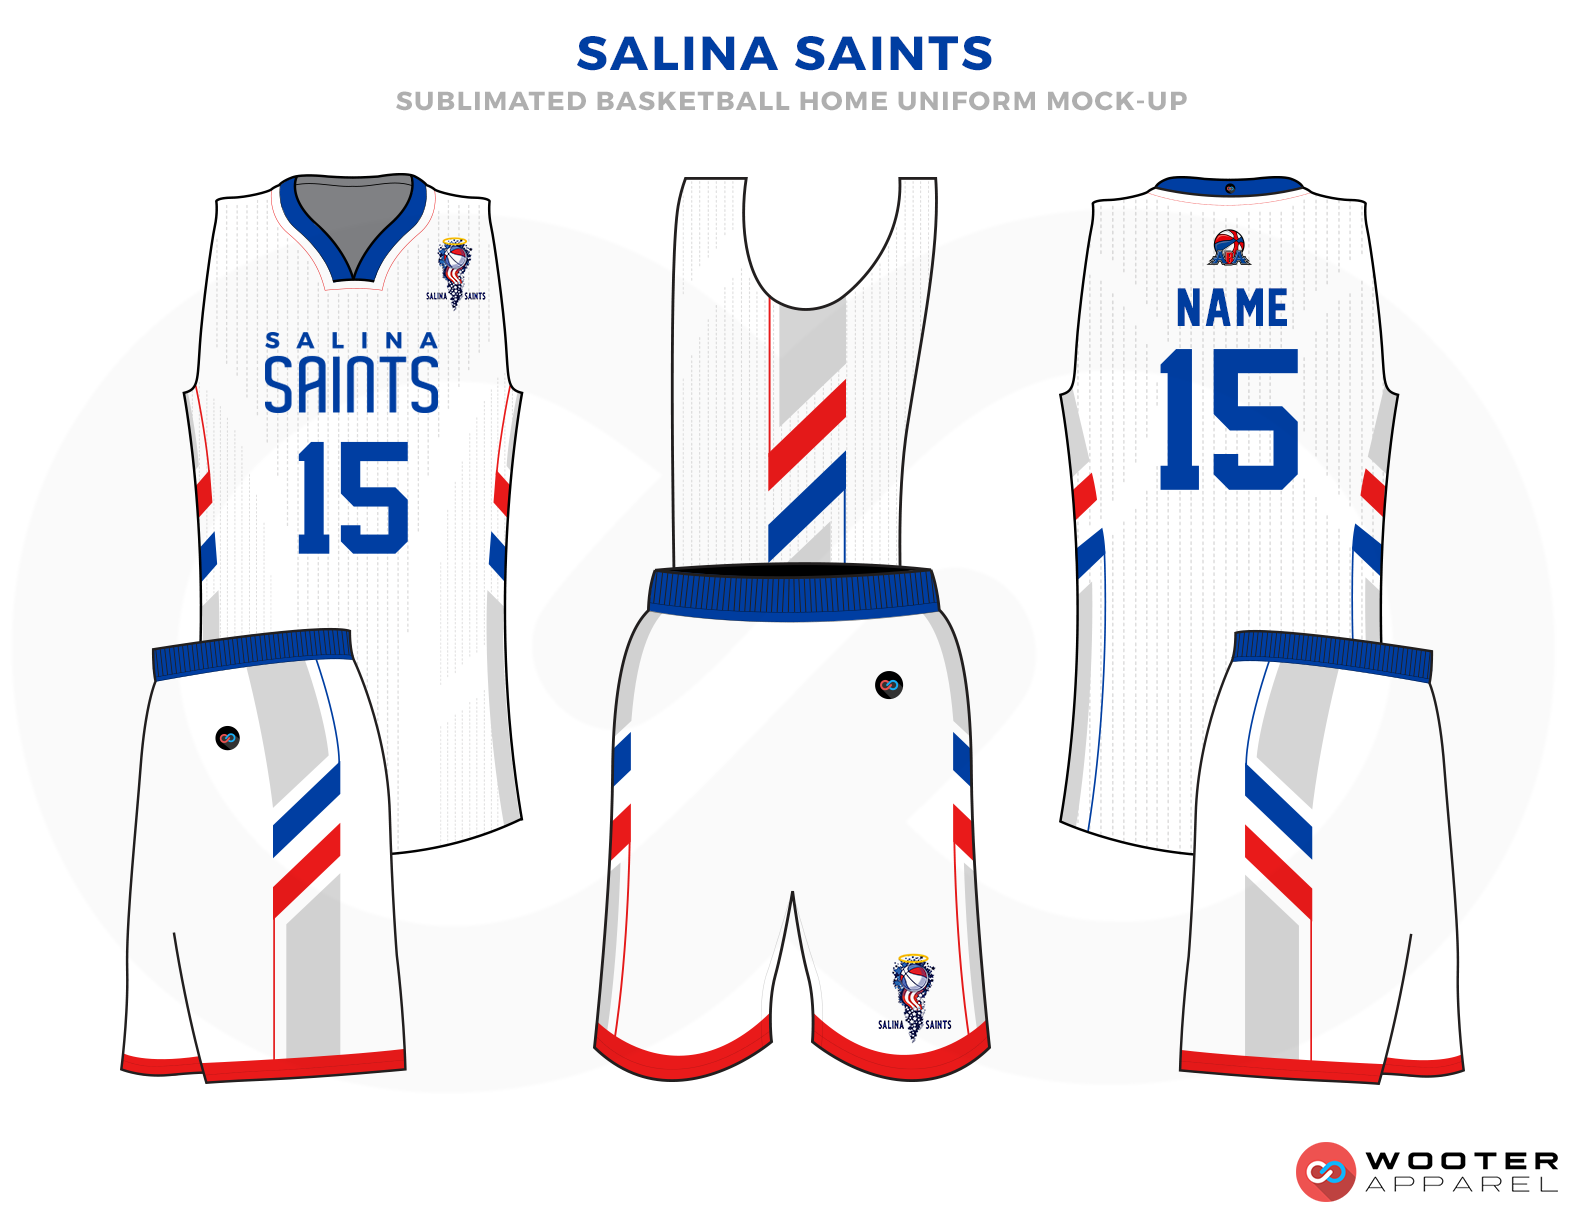 SALINA SAINTS White Blue and Red Basketball Uniforms, Jersey and shorts